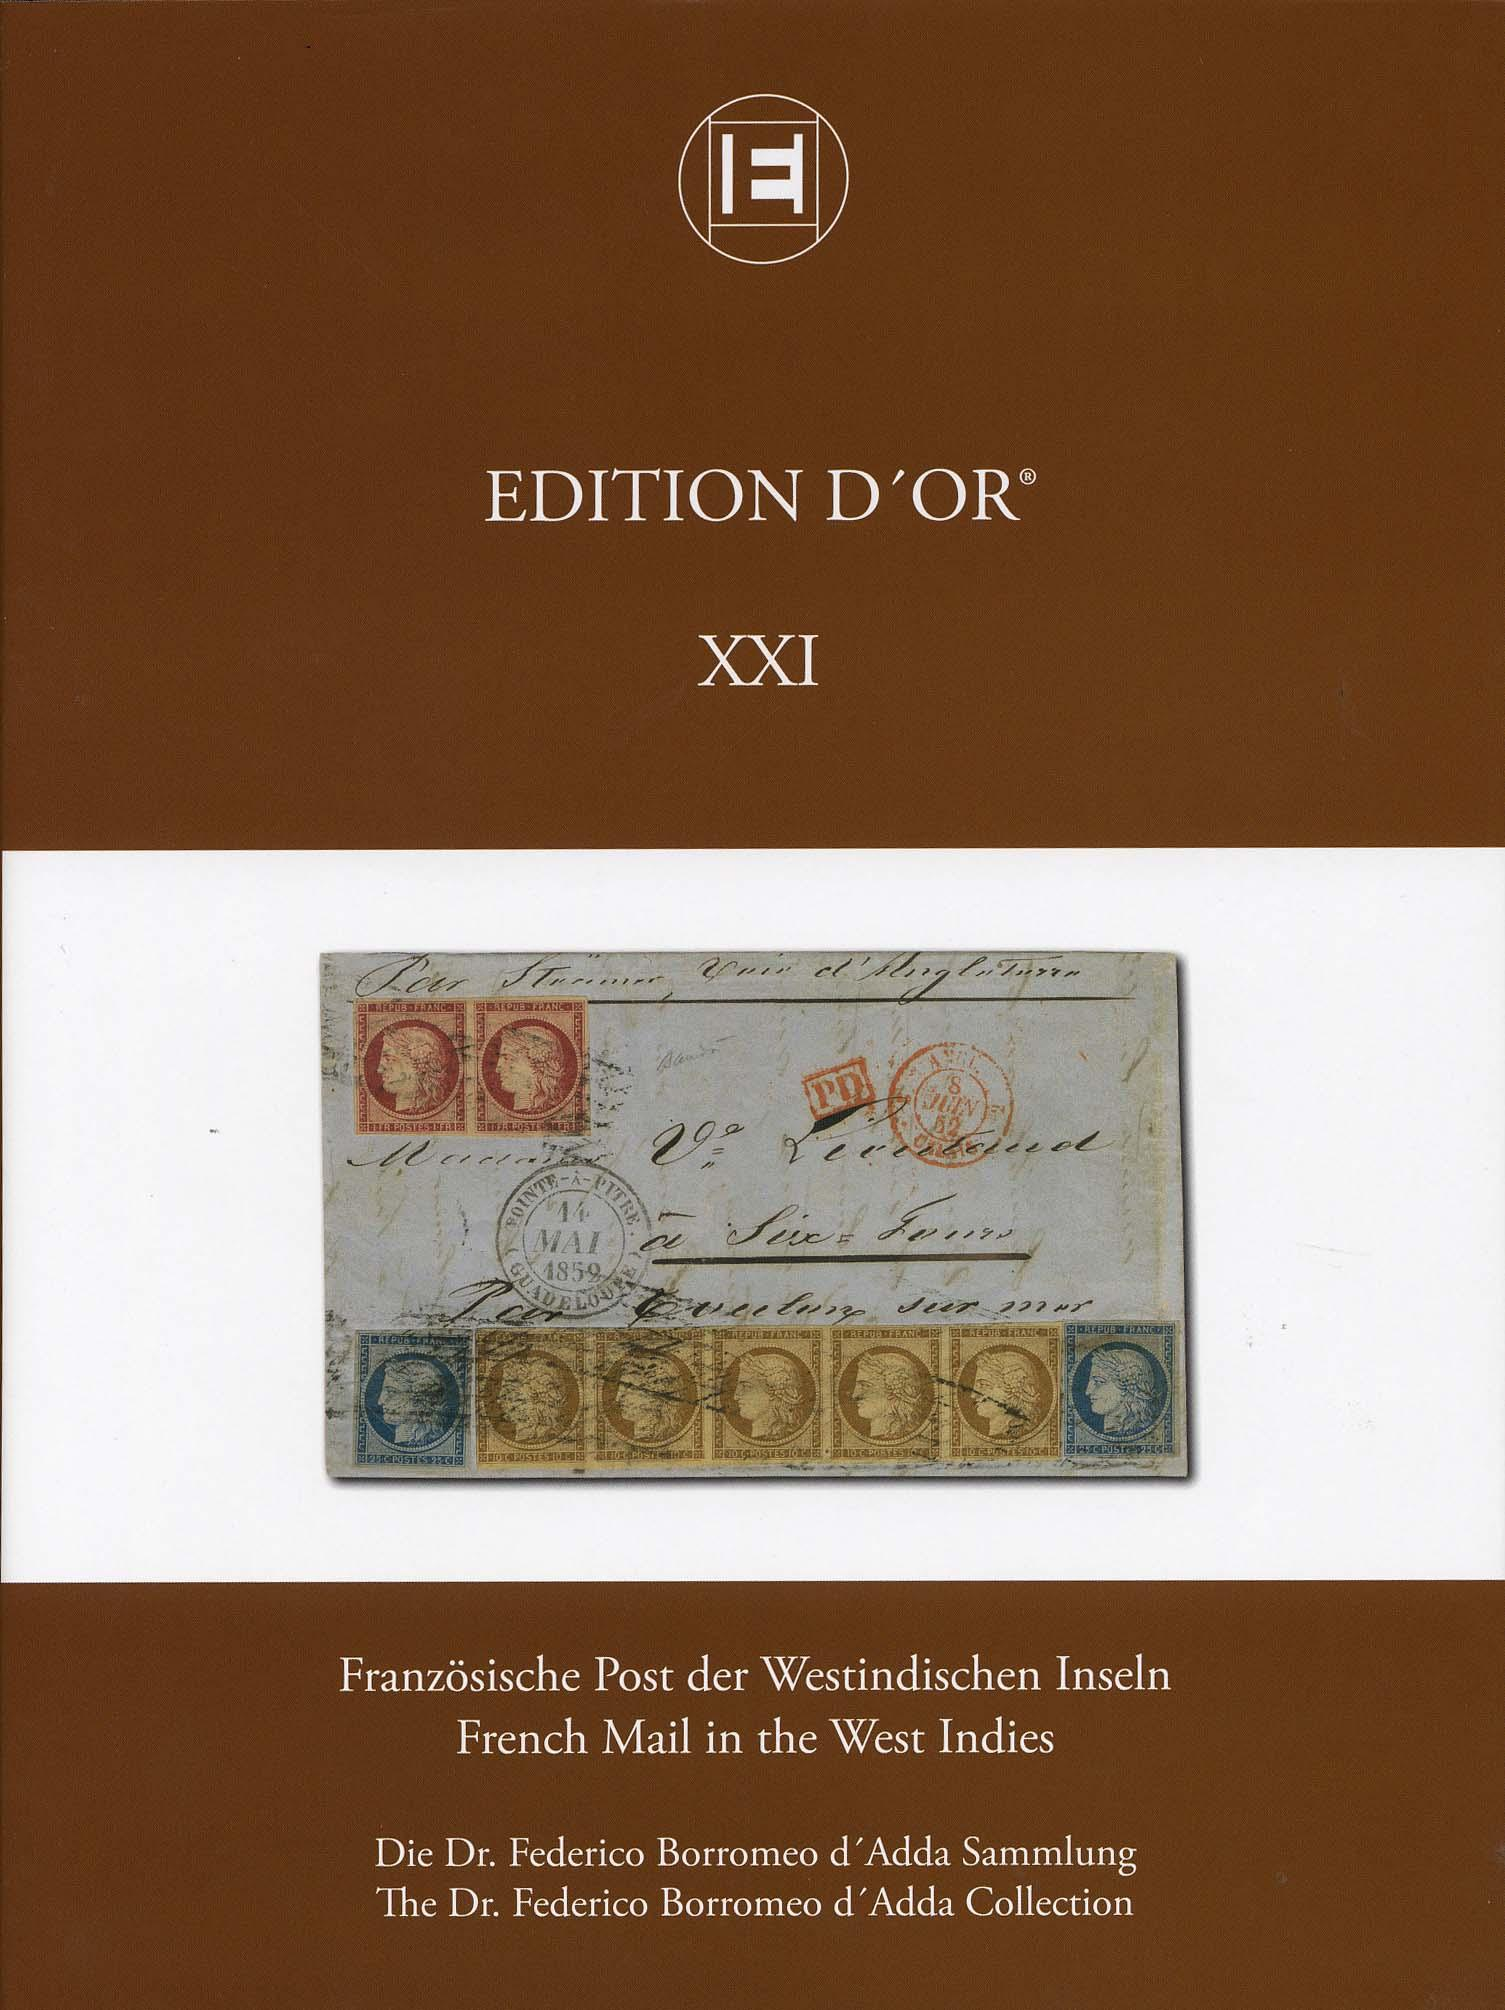 Vol. 21: French Mail in the West Indies • The Dr. Federico Borromeo d'Adda Collection